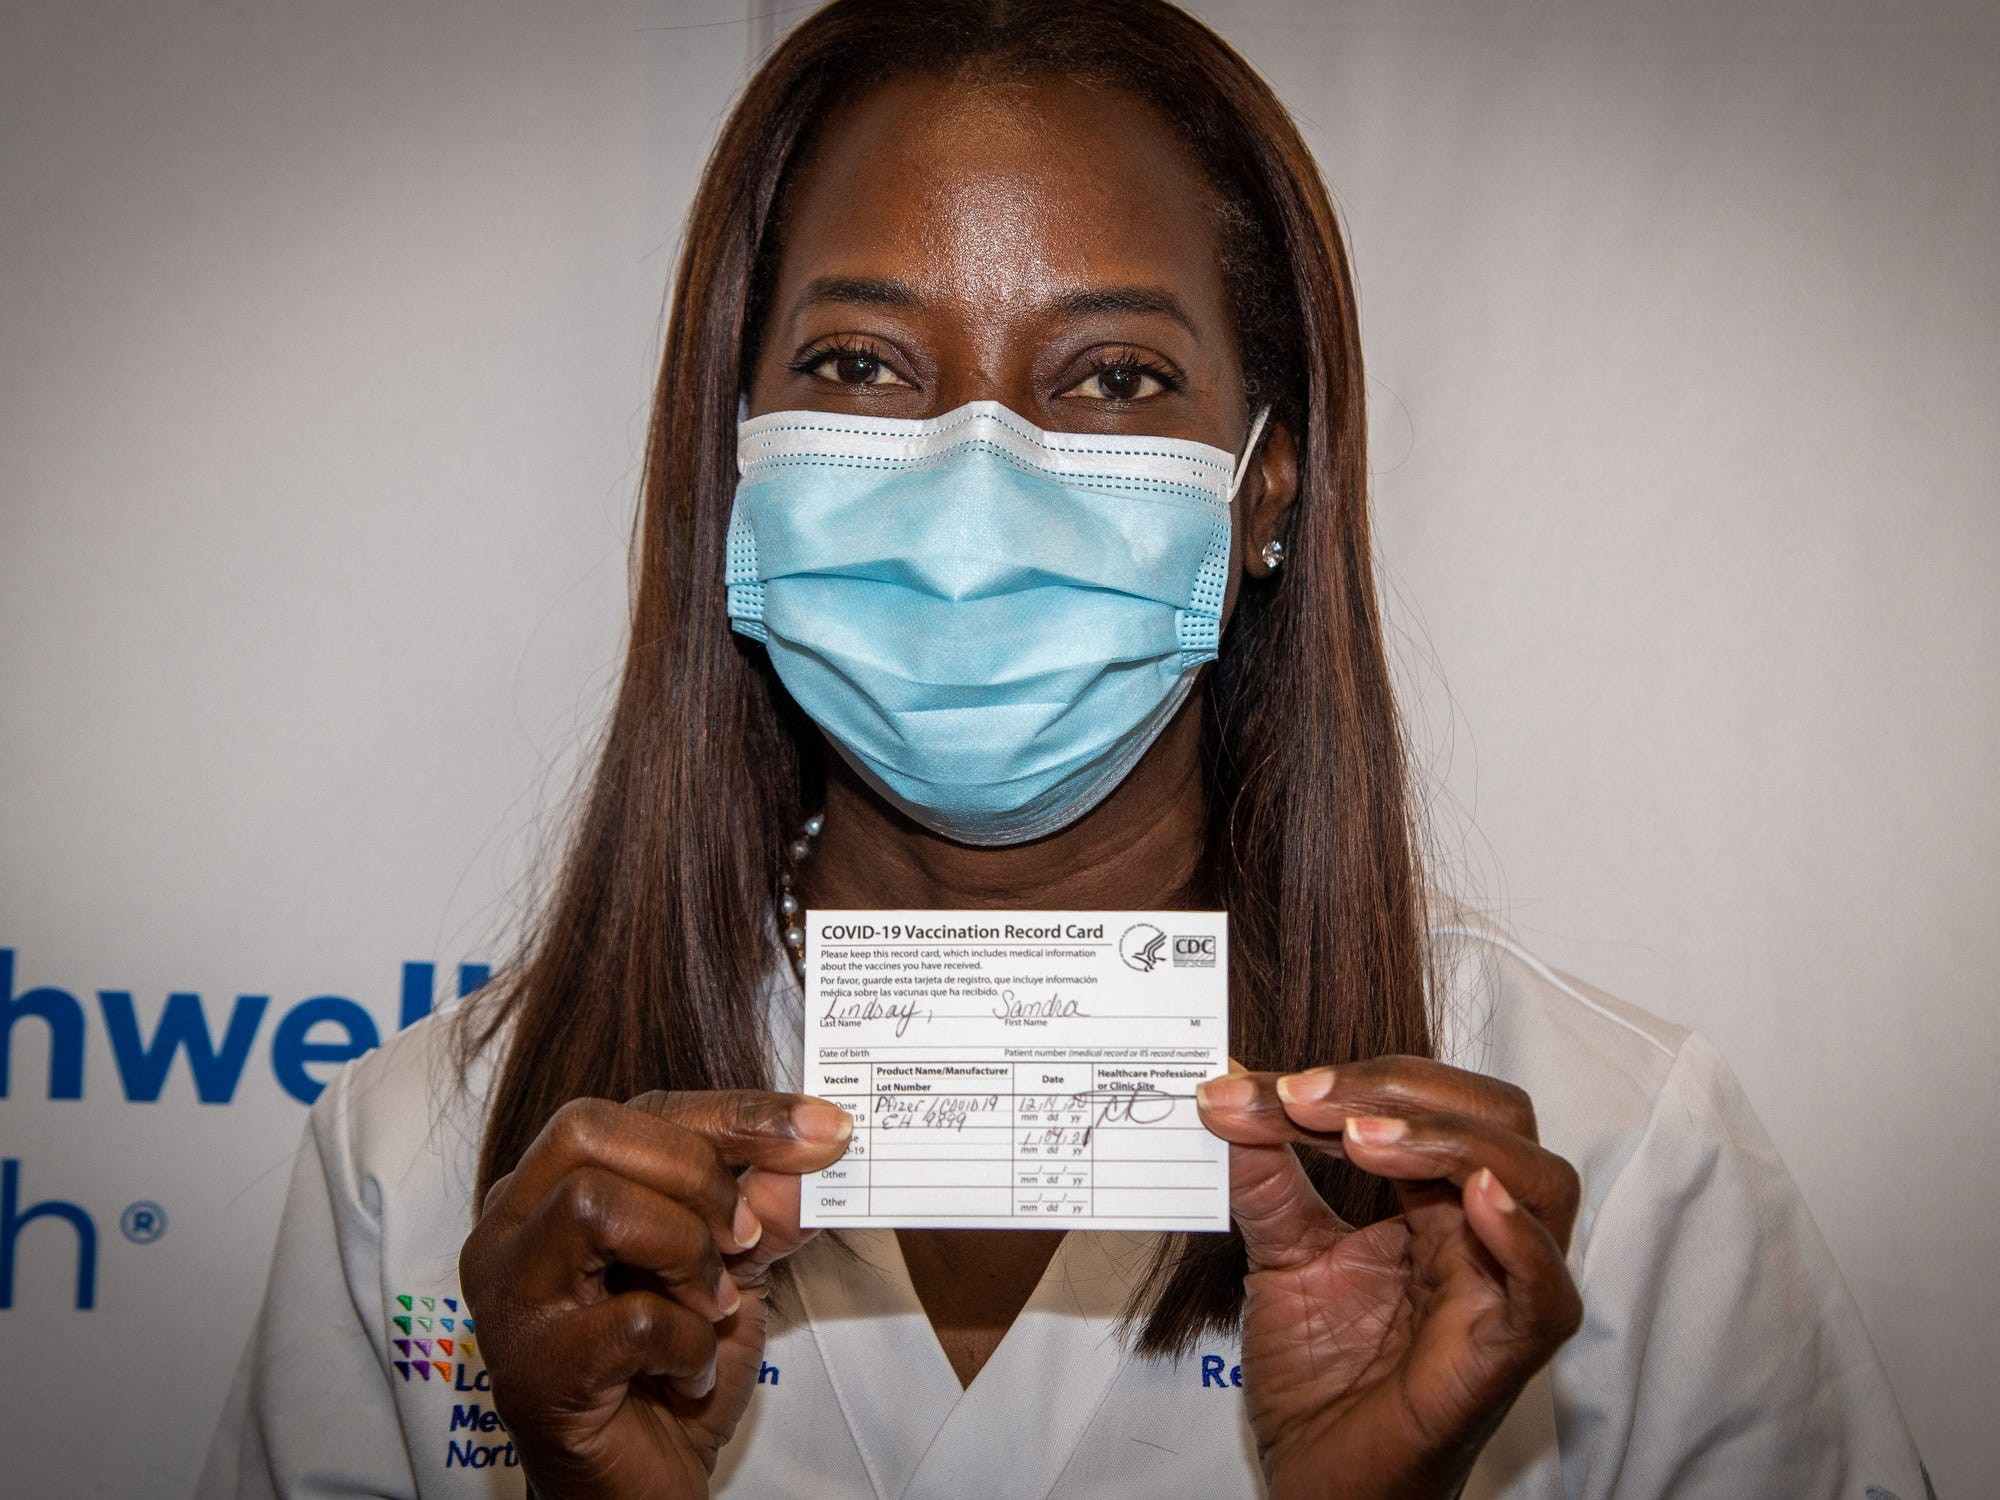 Sandra Lindsay became the first person in the US outside of trials to receive a COVID-19 vaccine.